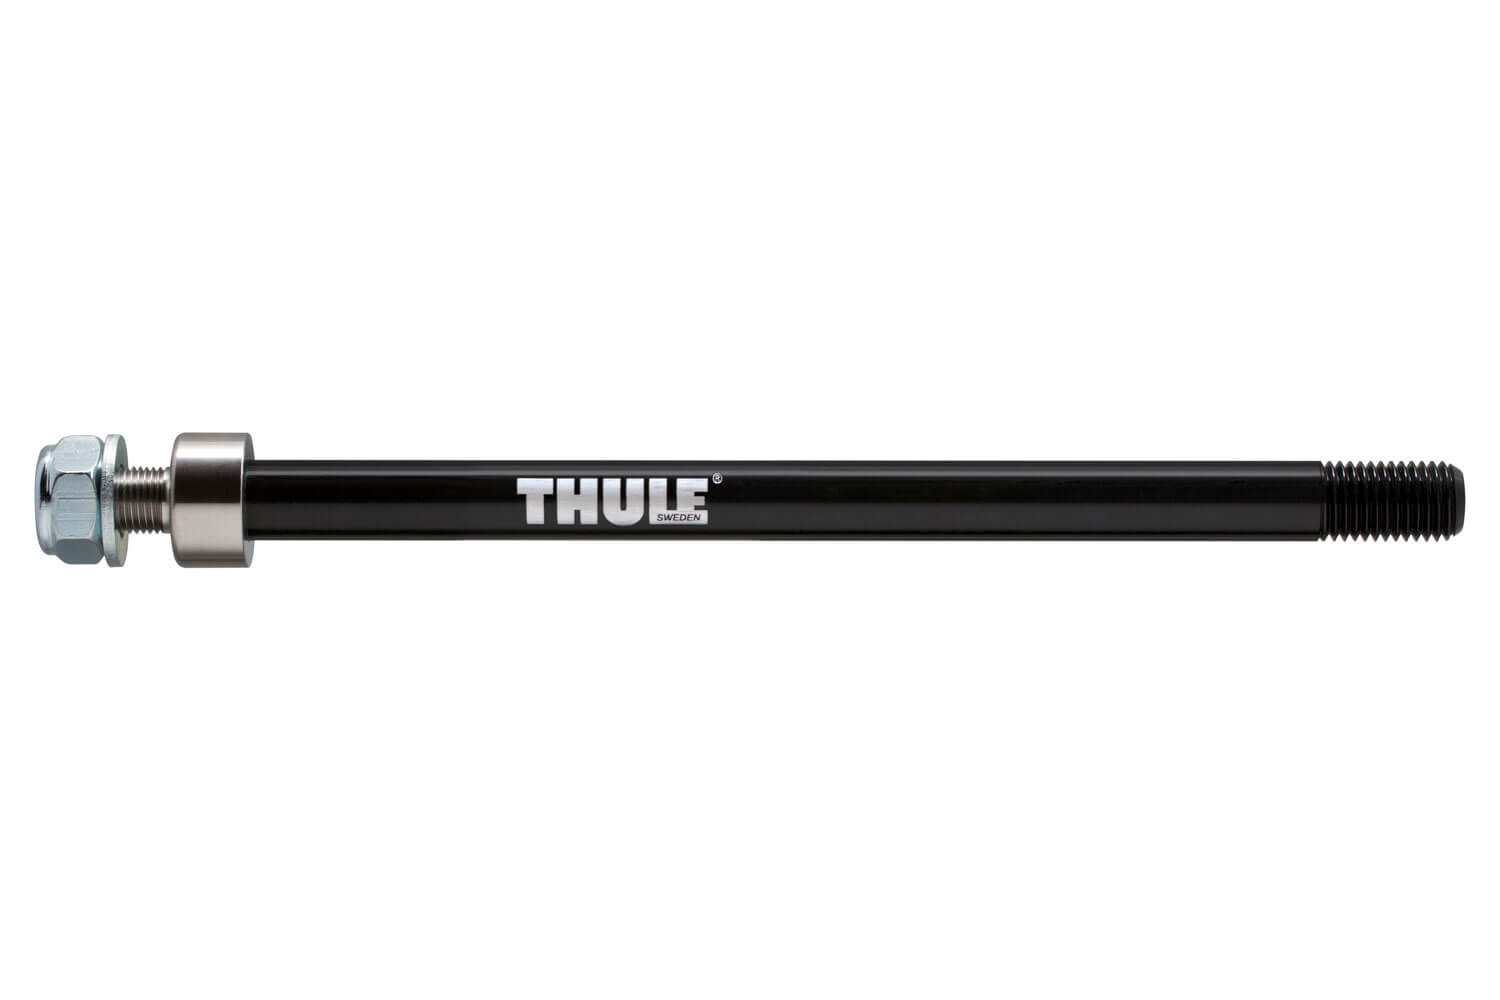 Thule Achsadapter Syntace M12x1.0 152-167mm